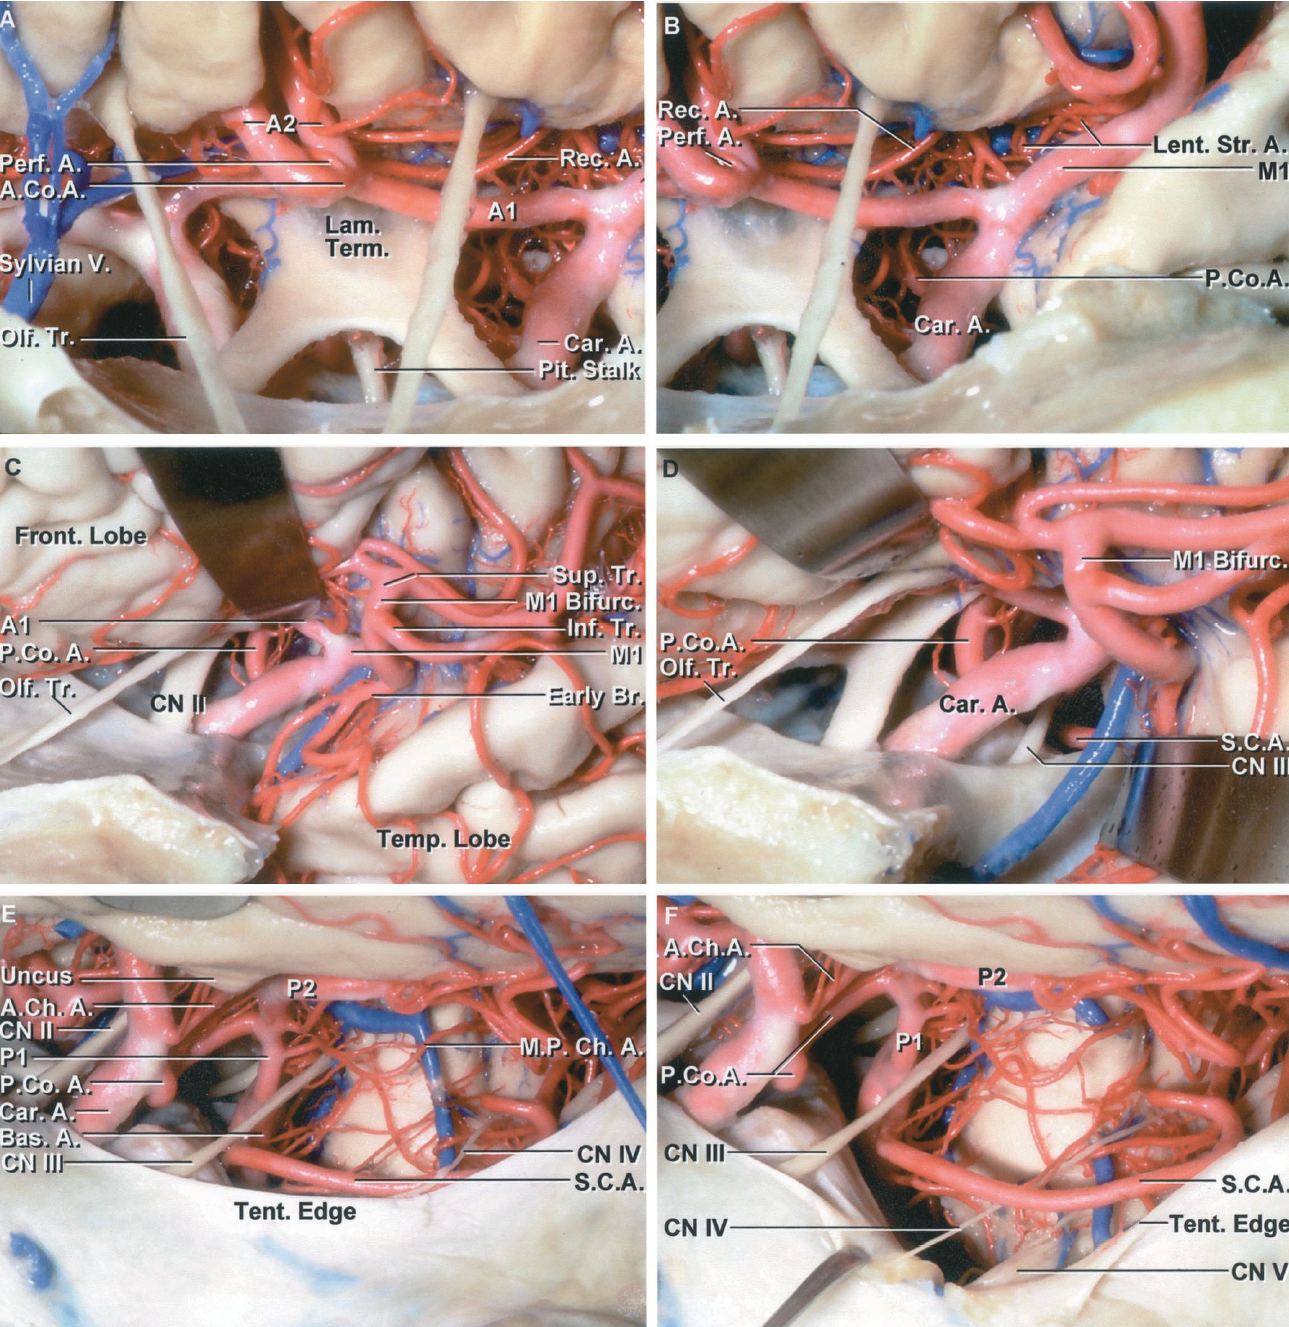 Figure 2.1 A-F. Arteries in the basal cisterns. A, anterior view. A1s of nearly equal size cross the front of the lamina terminalis. The right A2 enters the interhemispheric fissure in front of the left A2. The left recurrent artery arises near the level of the anterior communicating artery (AComA) and passes laterally below the anterior perforated substance. A perforating artery arises from the AComA. B, the view has shifted laterally above the carotid bifurcation. The recurrent artery passes laterally above the A1 and intermingles with the lenticulostriate branches of the M1. The posterior communicating artery (PComA) is directed medially and is seen through the opticocarotid triangle located between the carotid artery, optic nerve, and the A1. C, anterolateral view. The PComA is seen through the opticocarotid triangle. The M1 bifurcates into superior and inferior trunks at the limen insula. D, the basal cisterns have been opened and the temporal pole retracted to expose the oculomotor nerve. The PComA is directed backward above and medial to the oculomotor nerve. The superior cerebellar artery courses below the oculomotor nerve. E, the temporal lobe has been elevated. The anterior choroidal artery (AChA) ascends on the medial side of the uncus. The PComA and the P1 join to form the P2, which continues backward on the medial side of the posterior part of the uncus. A medial posterior choroidal artery (MPChA) passes backward around the brainstem. The superior cerebellar artery passes below the oculomotor and trochlear nerves. The branches forming the P3 course through the quadrigeminal cistern. The P2 courses through the ambient and crural cisterns. A MPChA encircles the brainstem. F, the tentorium has been divided to expose the upper part of the basilar artery. The trigeminal nerve is exposed in the lateral margin of the tentorial opening. The posterior cerebral artery (PCA) courses above and the superior cerebellar artery courses below the oculomotor nerve.